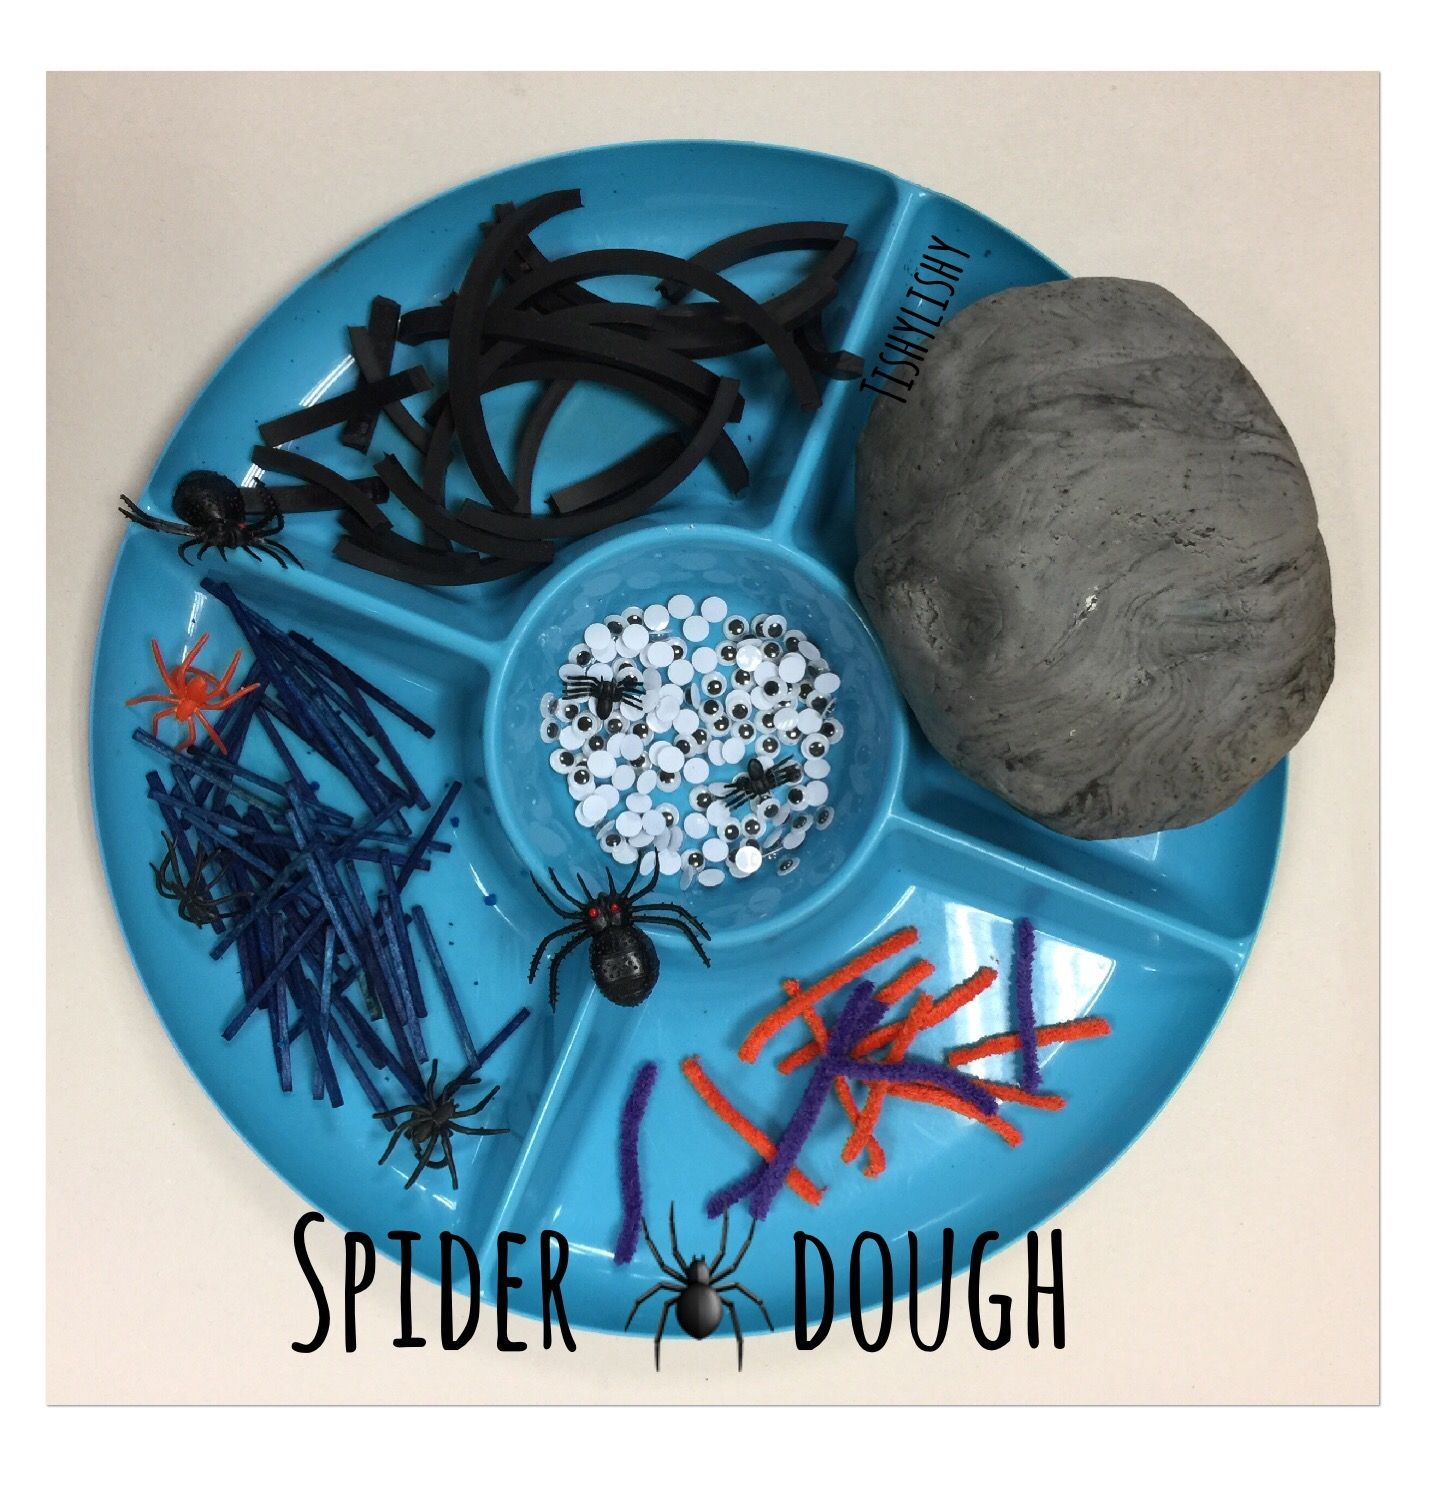 Spider Dough